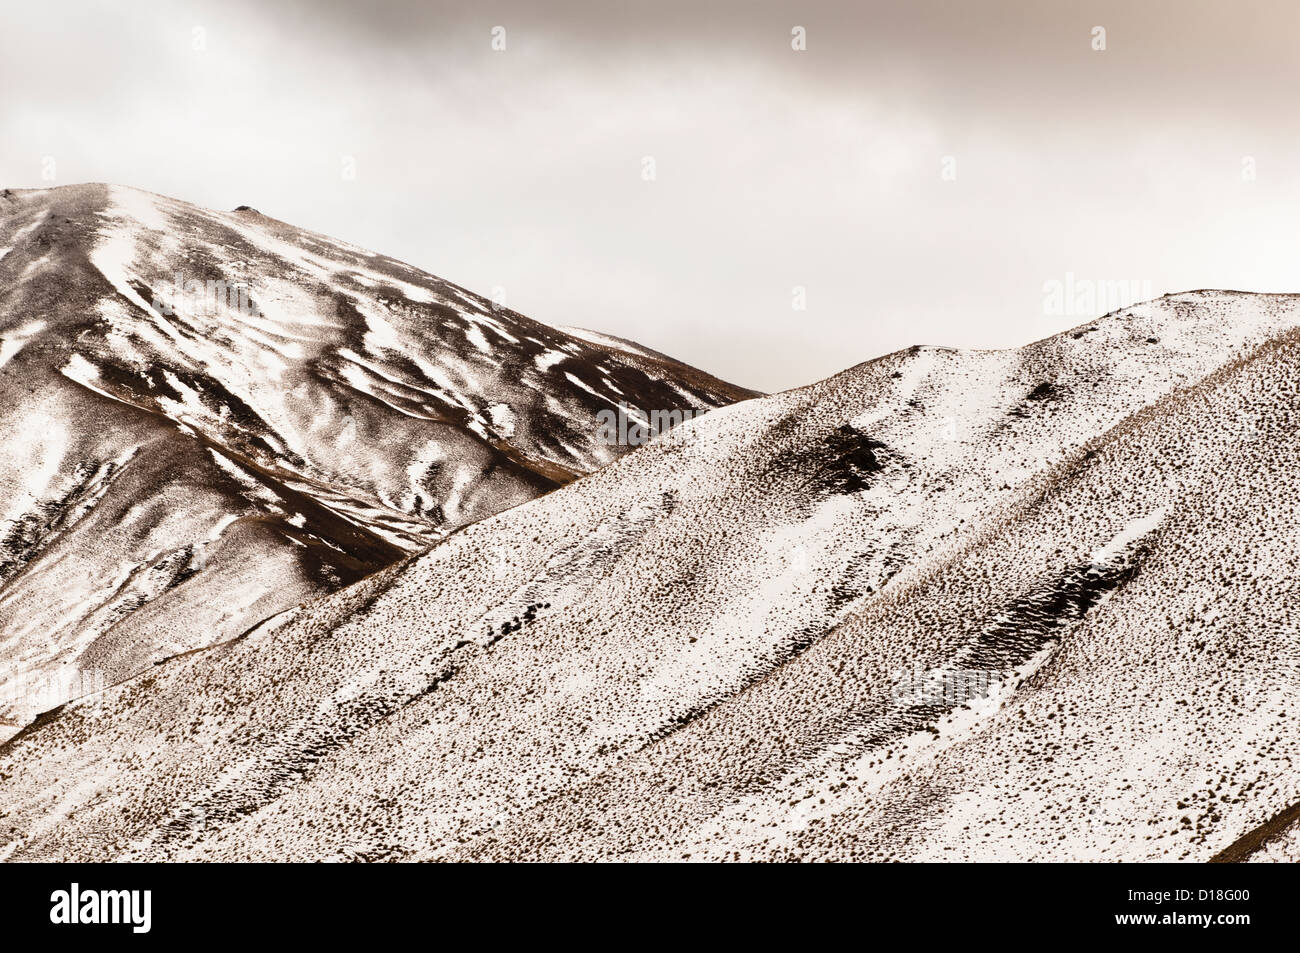 Grass and snow on mountainsides - Stock Image